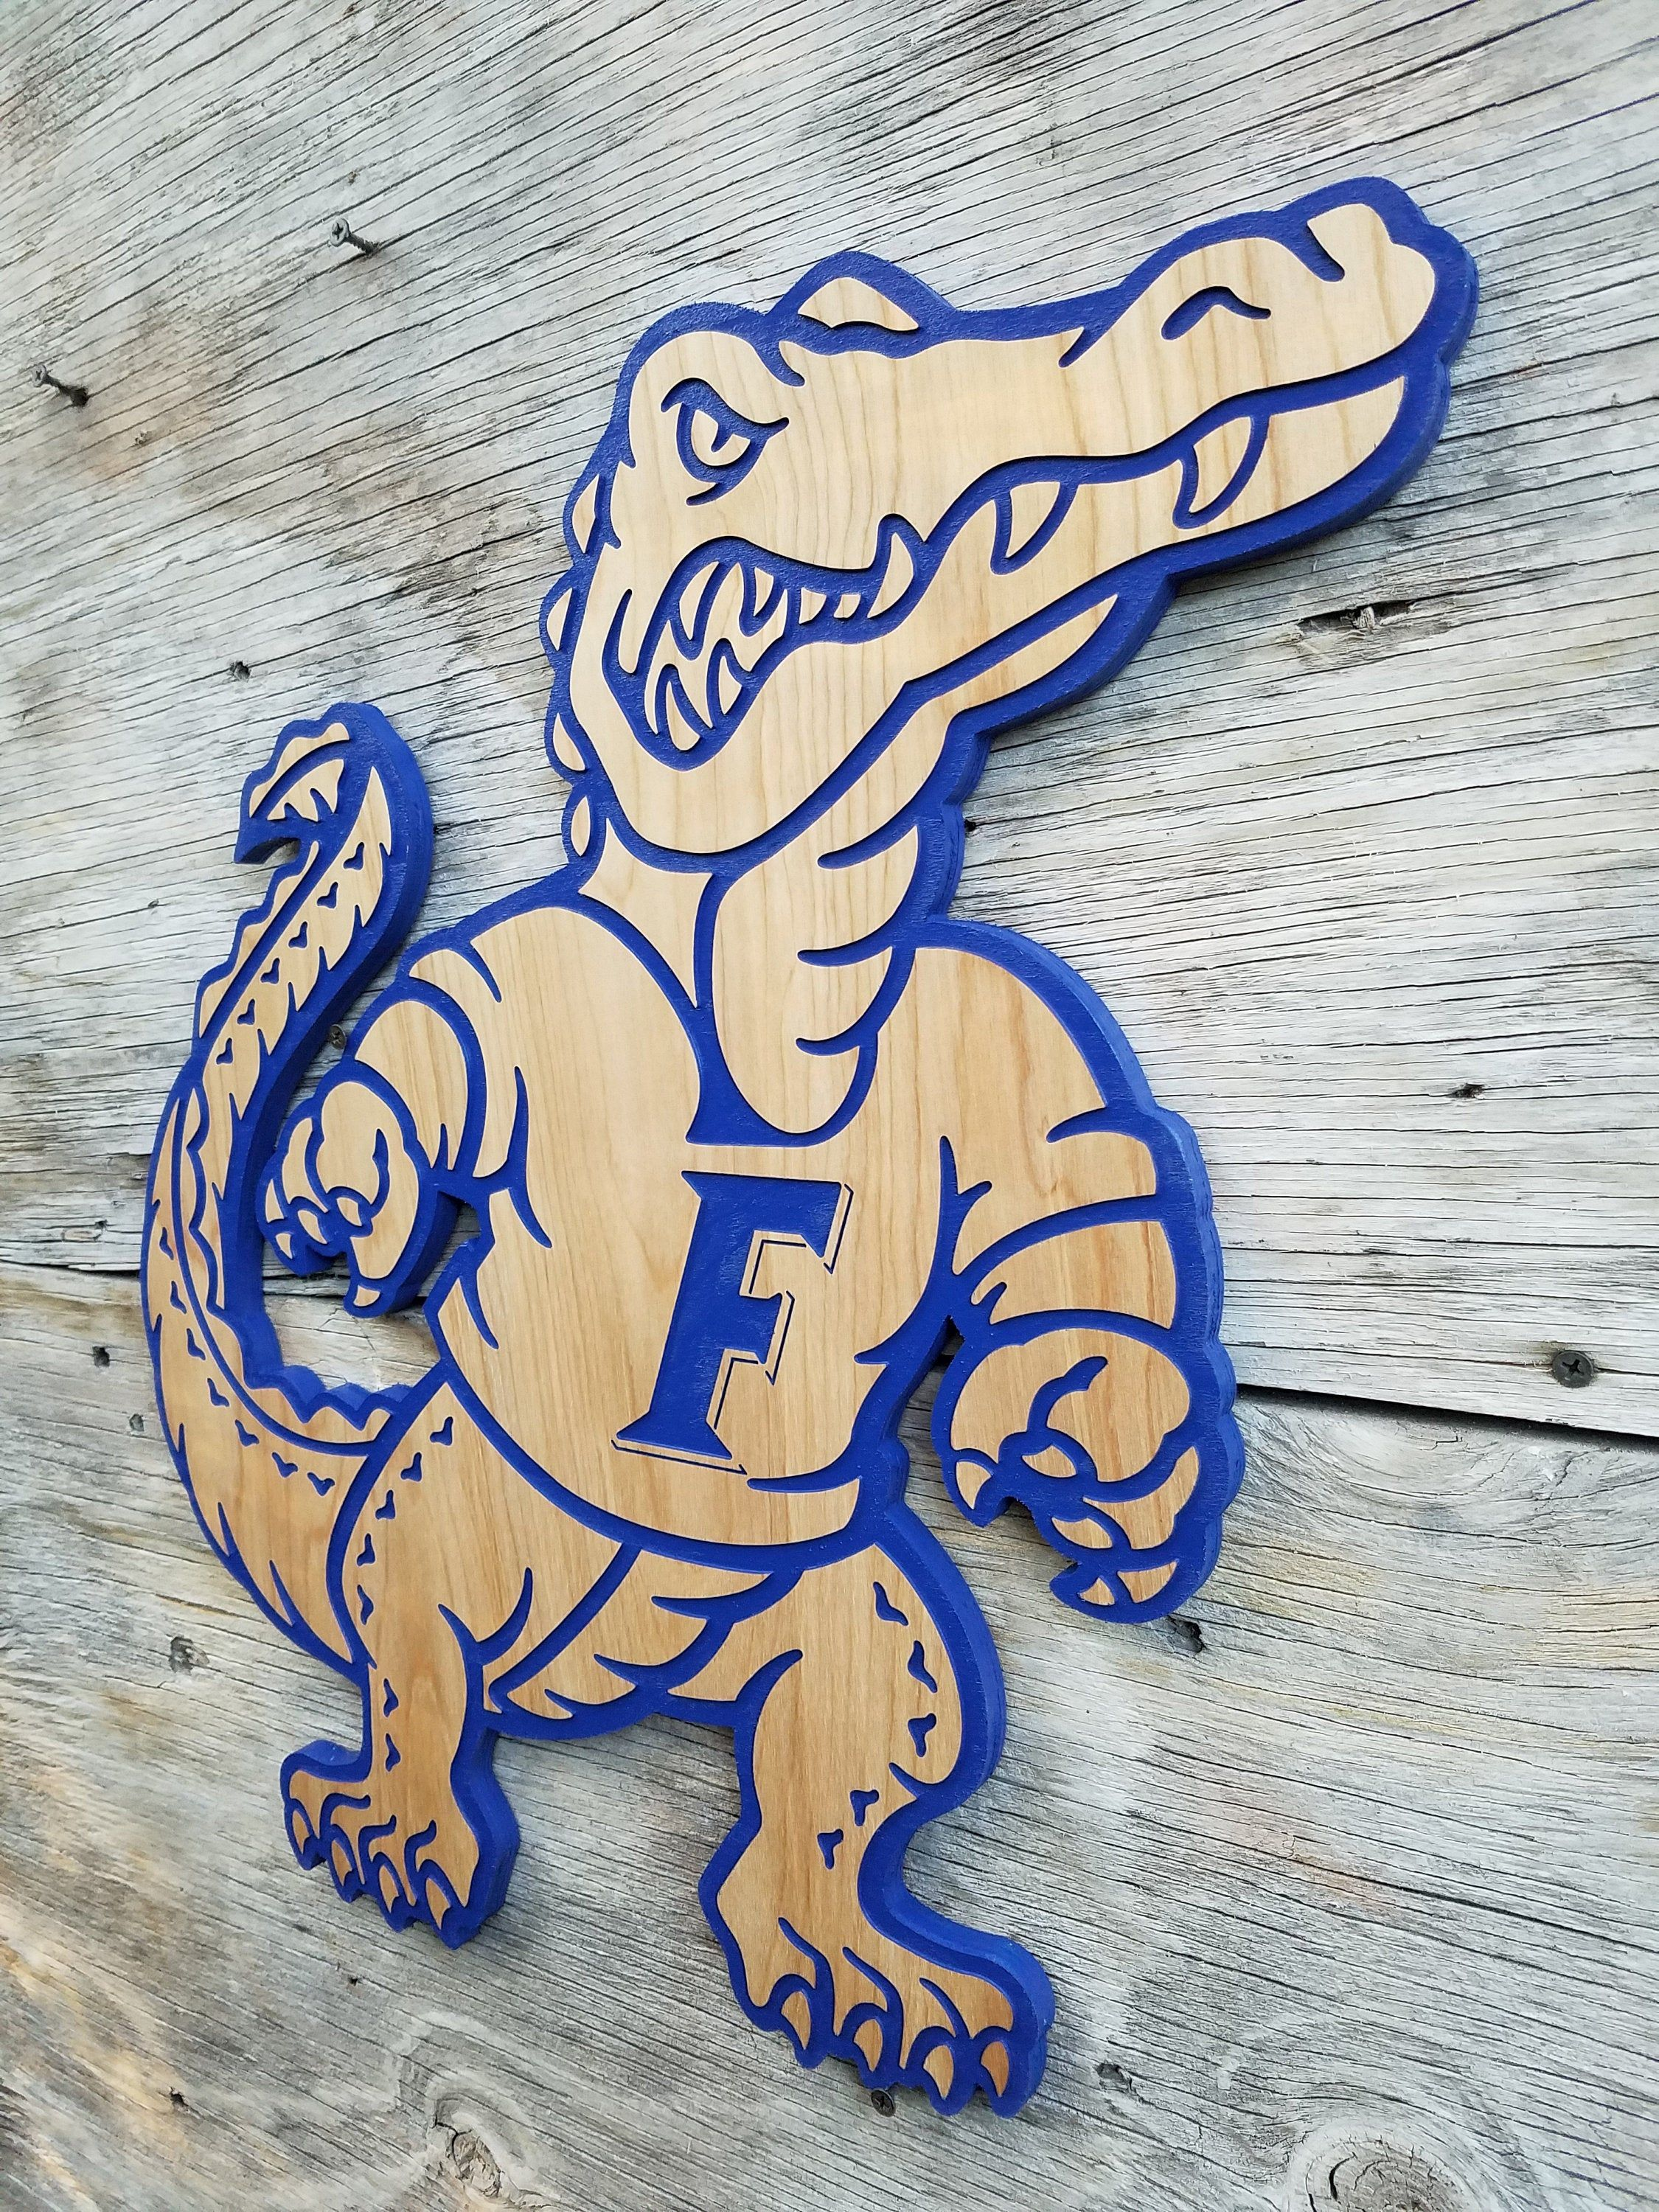 Uf Florida Gator Wooden Wall Hanging Football Decor Etsy Florida Gators Wallpaper Florida Gators Football Florida Gators